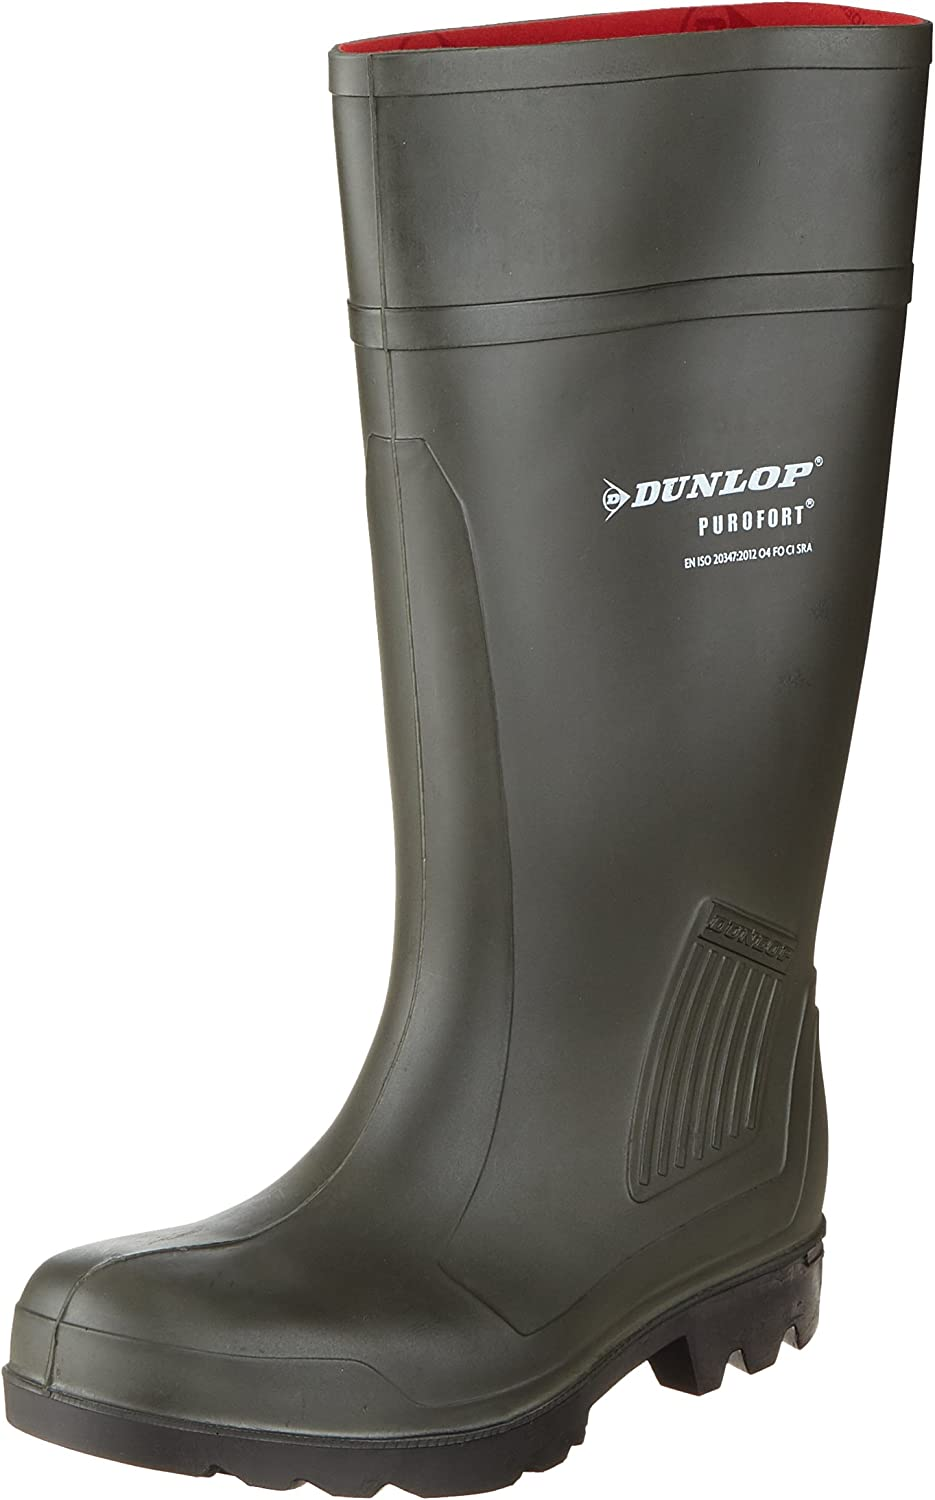 TALLA 41 EU / 7 UK / 8 US. Dunlop Pull-On Self-Lined Wellingtons - Green - Size 39 40 41 42 43 44